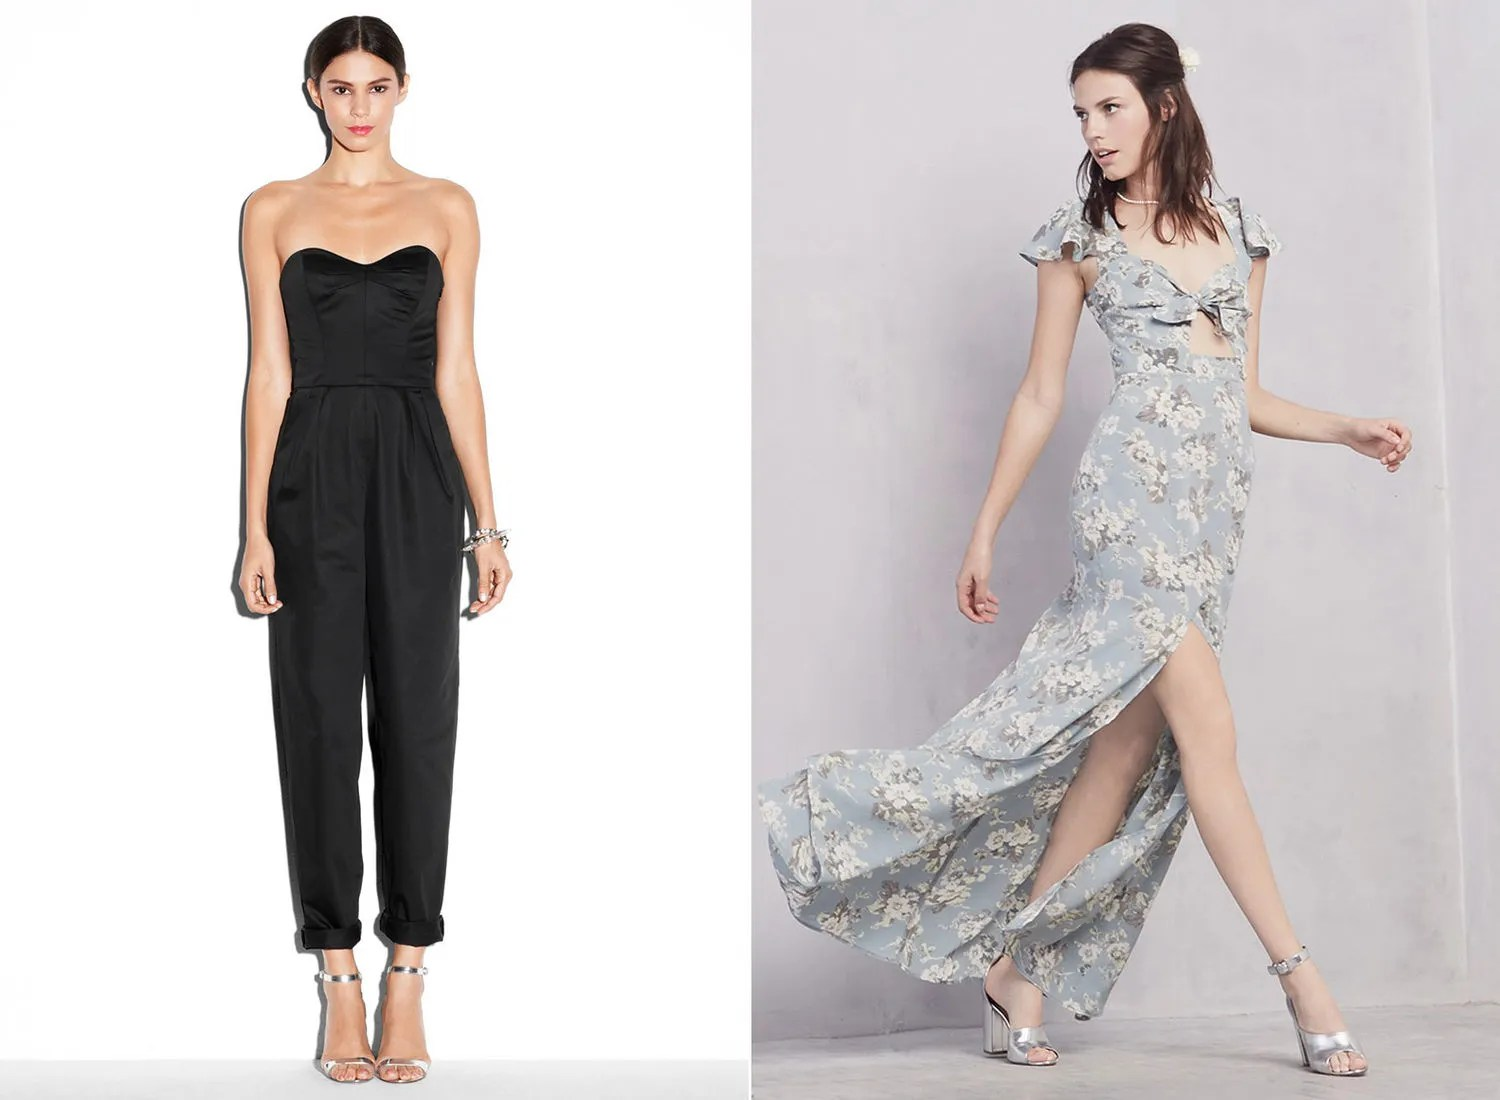 Summer Wedding Dress Code What to Wear to a Formal Casual or Destination Summer Wedding  Glamour